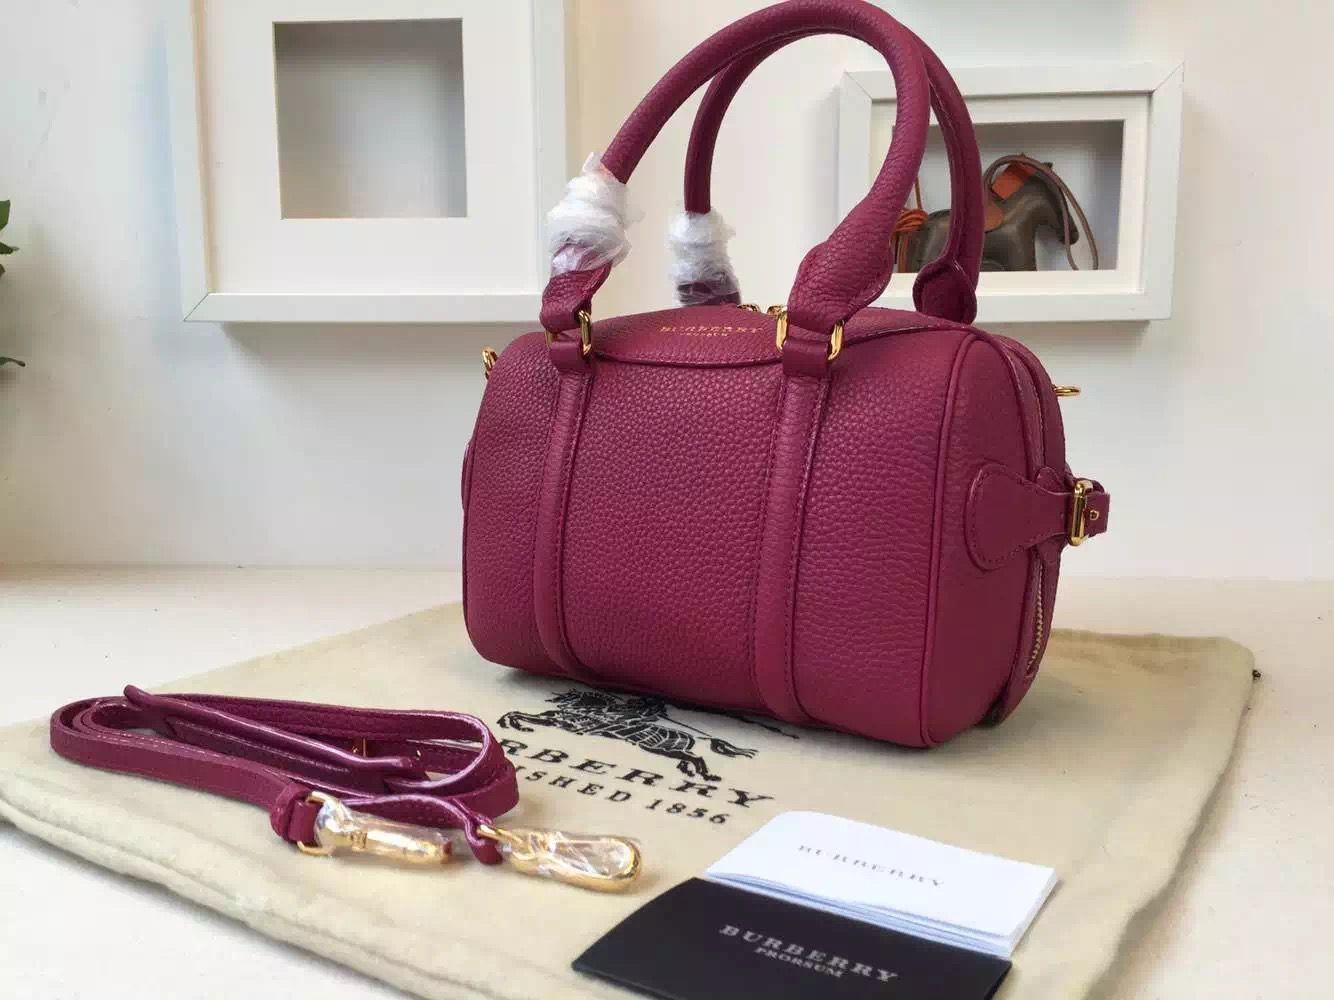 Burberry 39733391 The Mini Bee In Grainy Tulip Pink Leather 2015 ... 874f91527ddb1